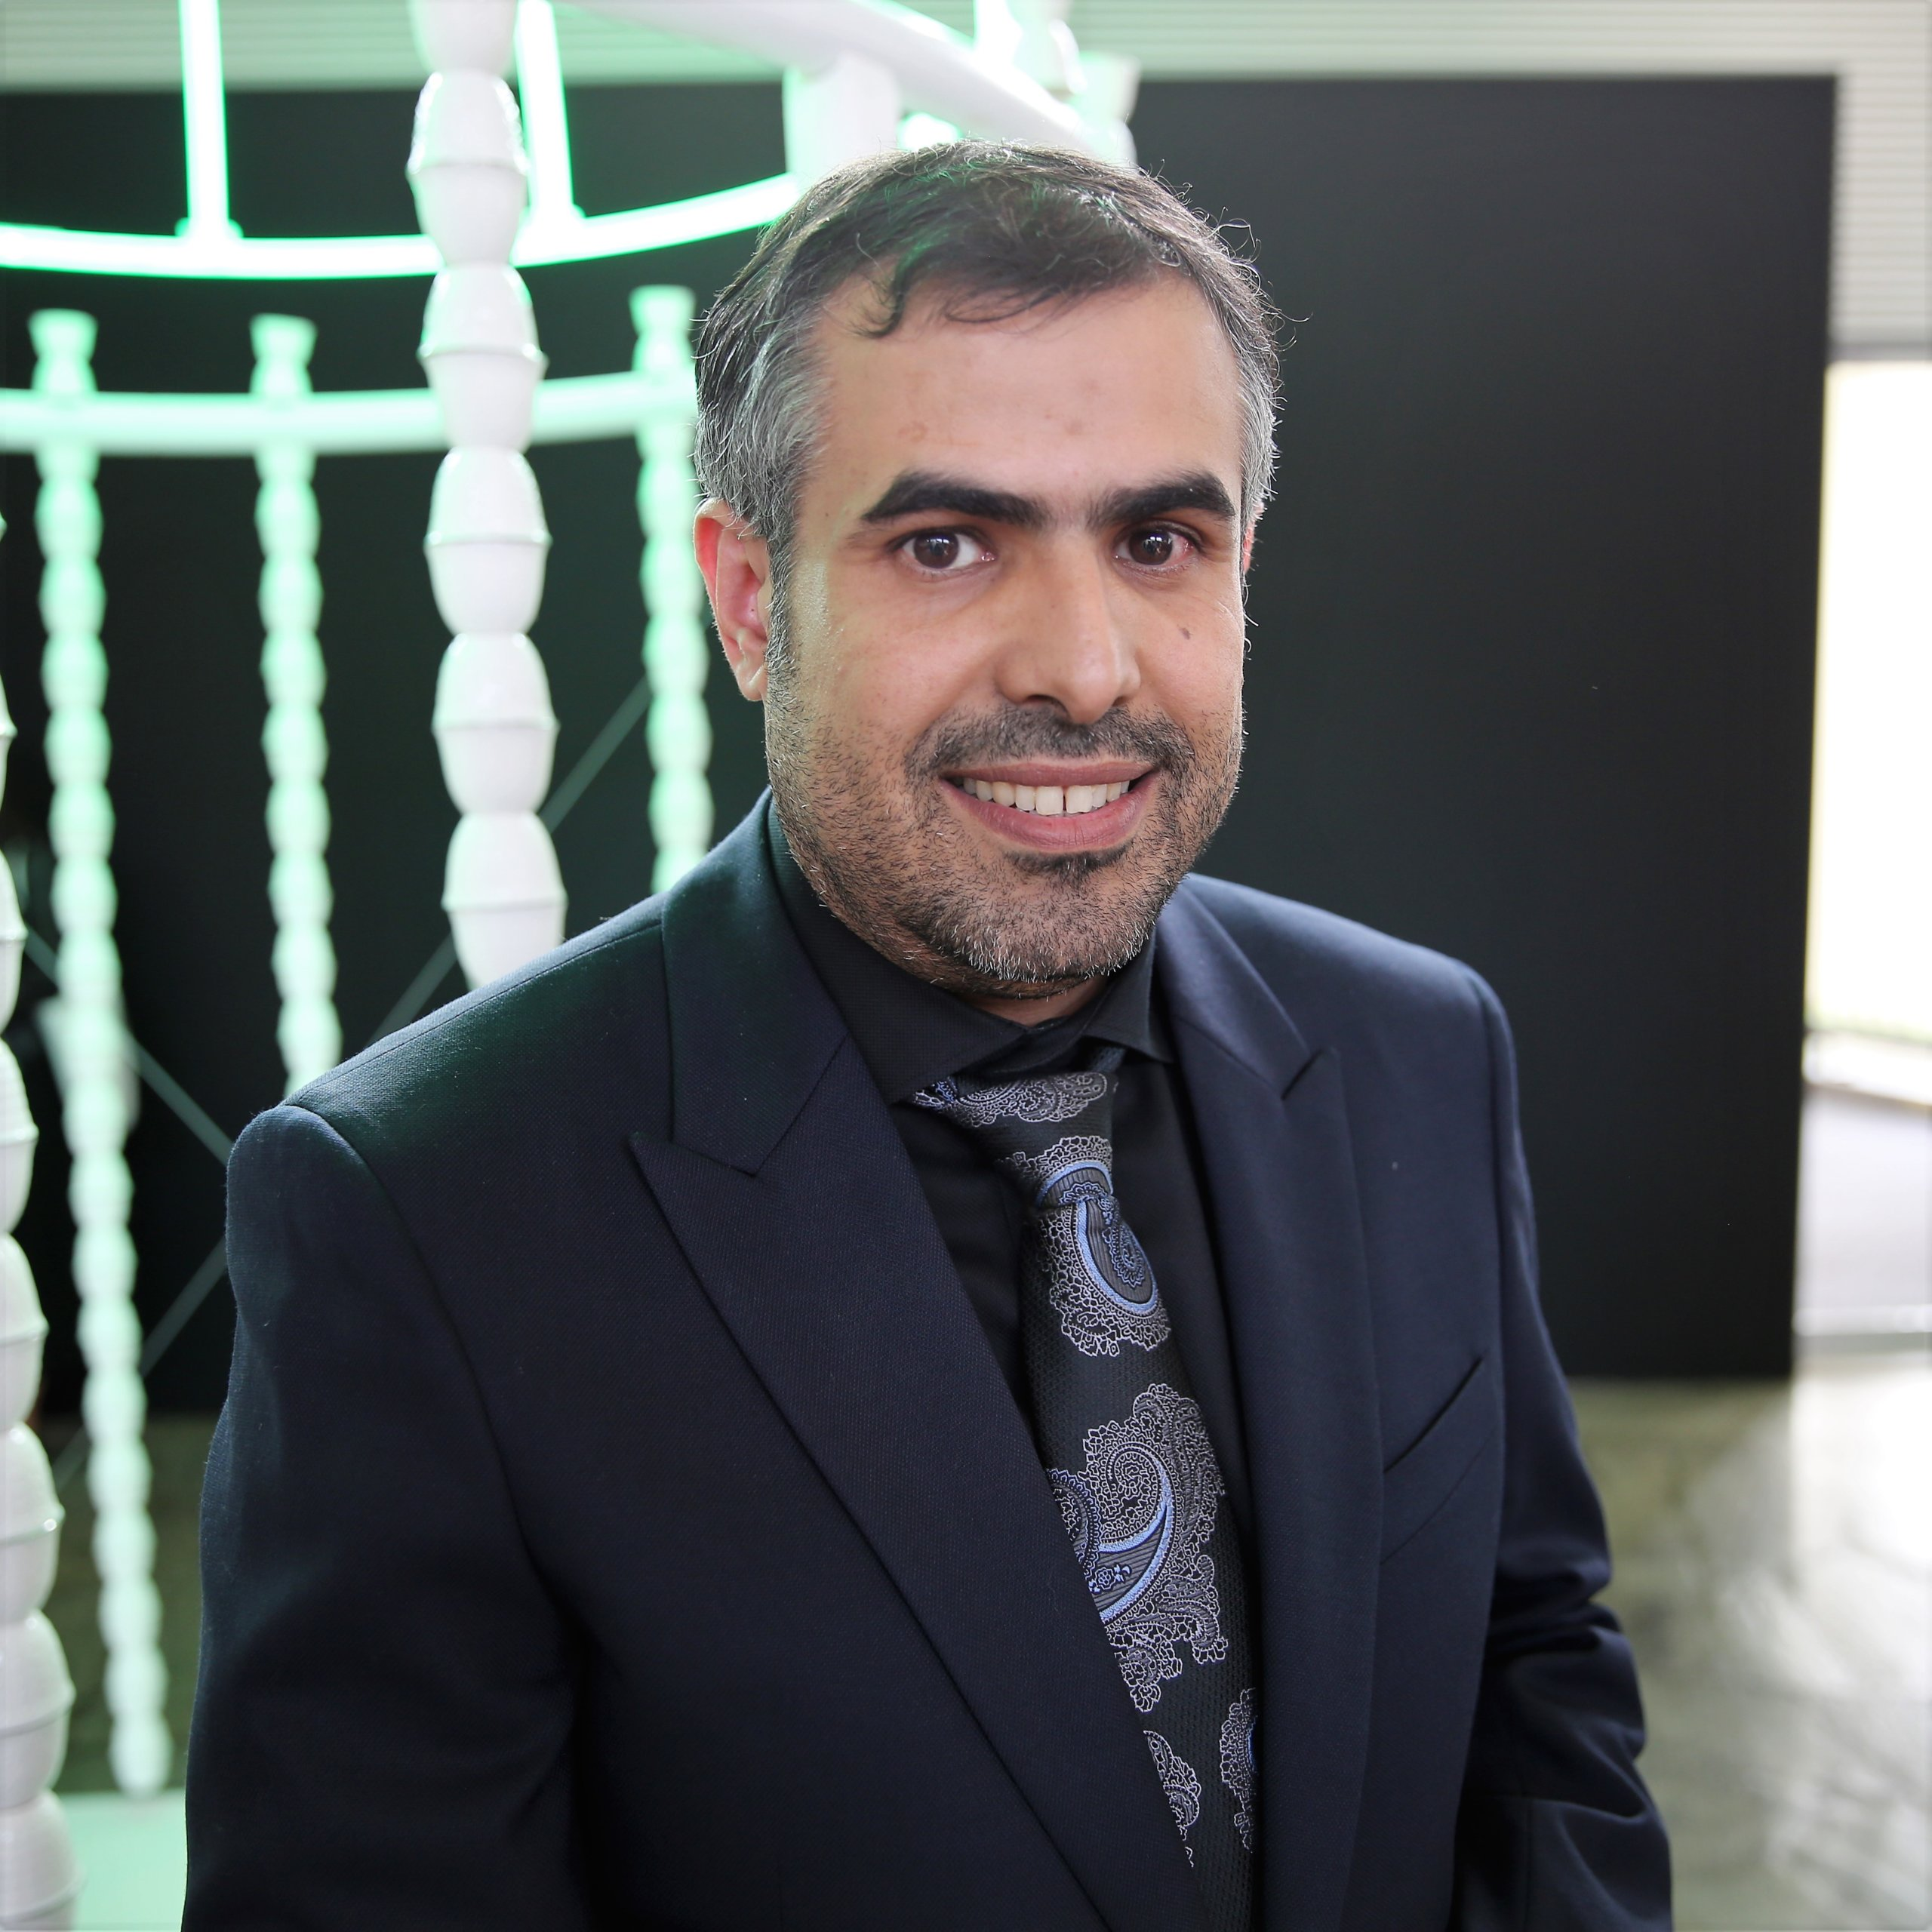 Ahmed Mater, Saudi artist and director of the MiSK Art Institute